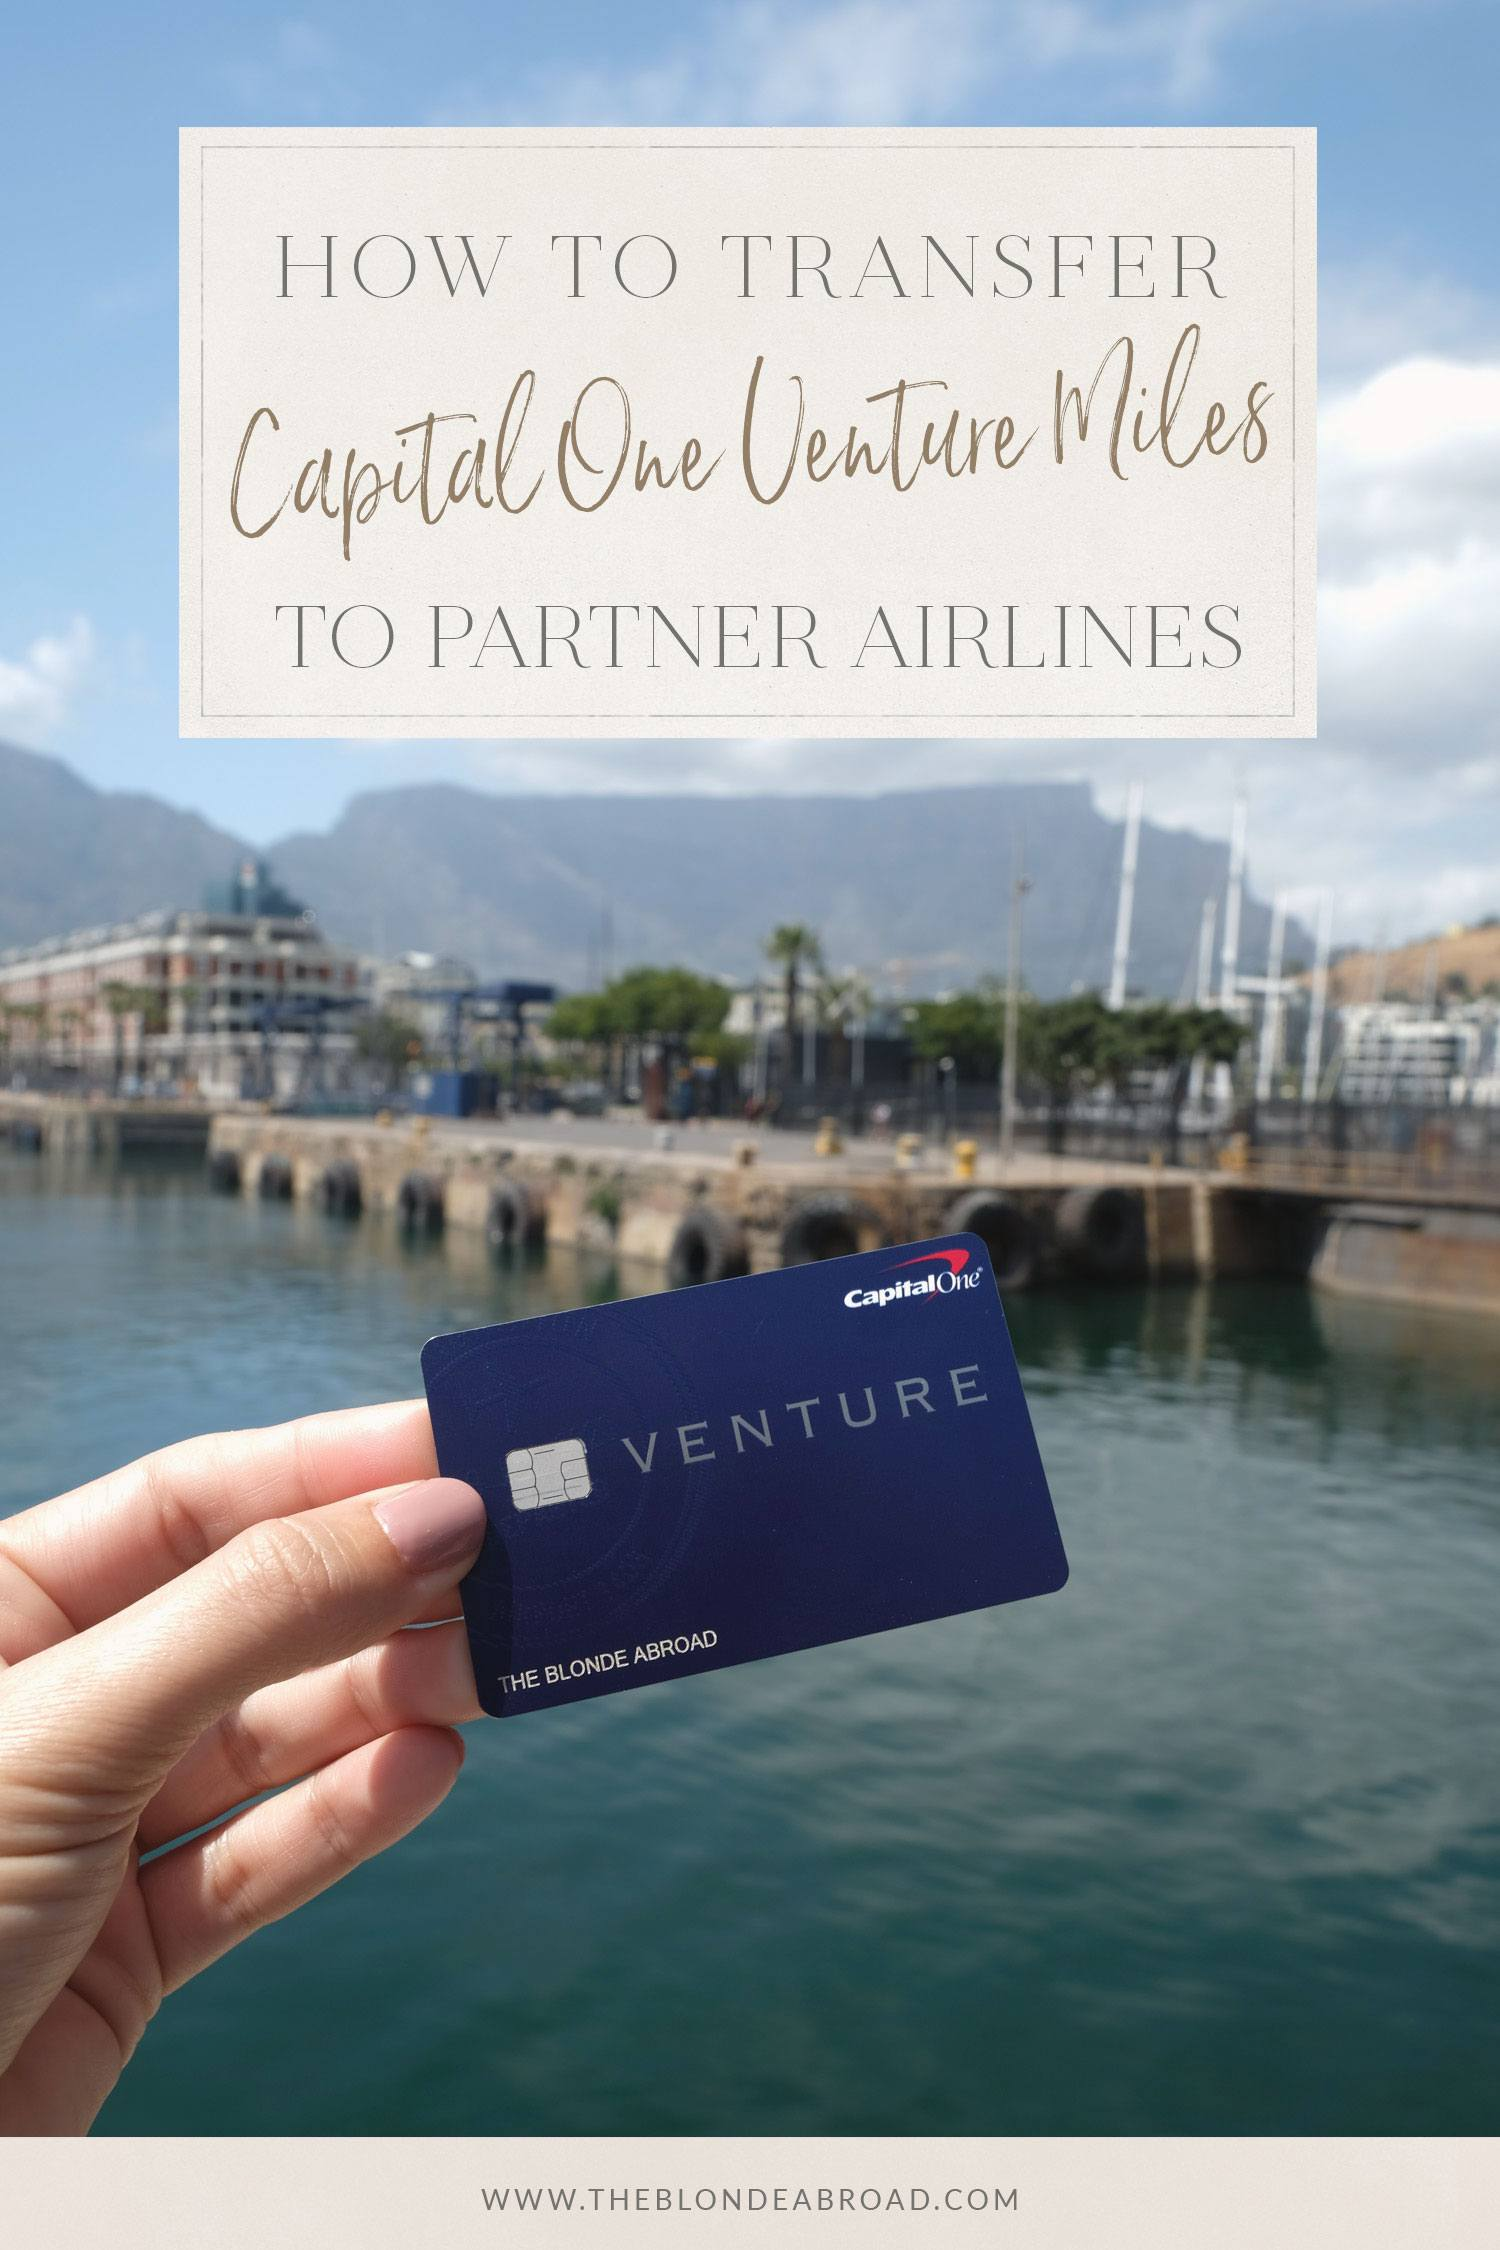 How to Transfer Capital One Venture Miles to Partner Airlines